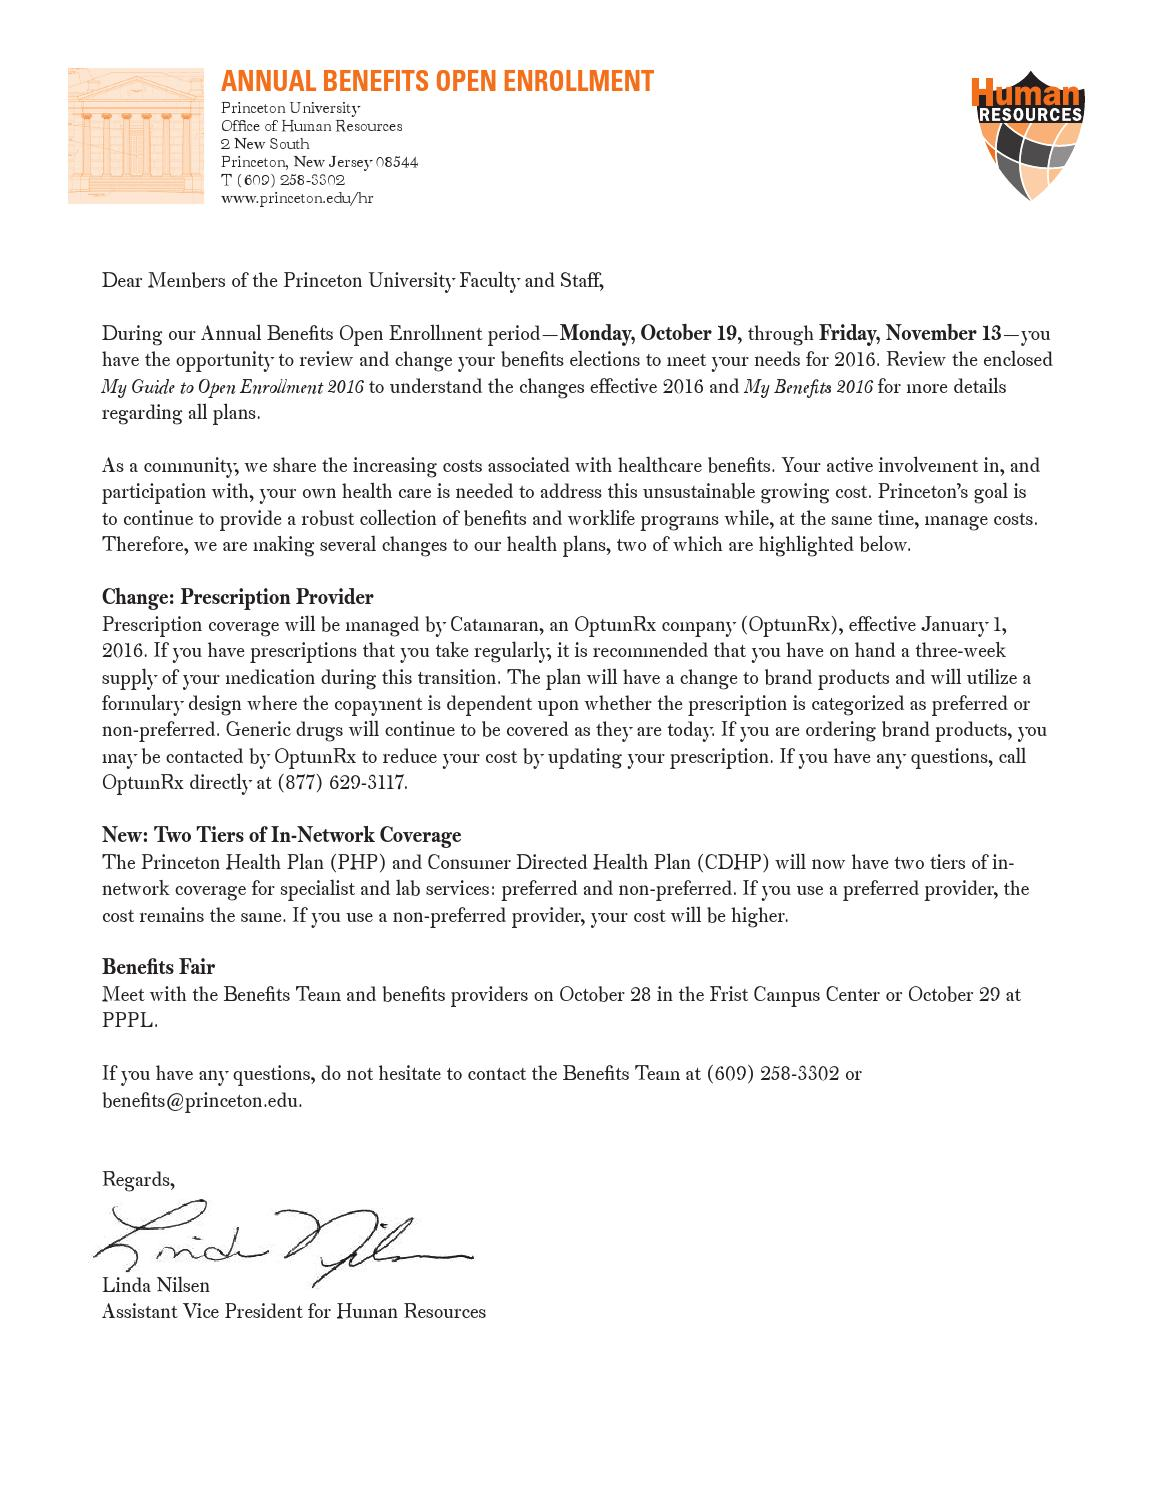 University Cover Letter Open Enrollment Cover Letter For 2016 By Princeton University